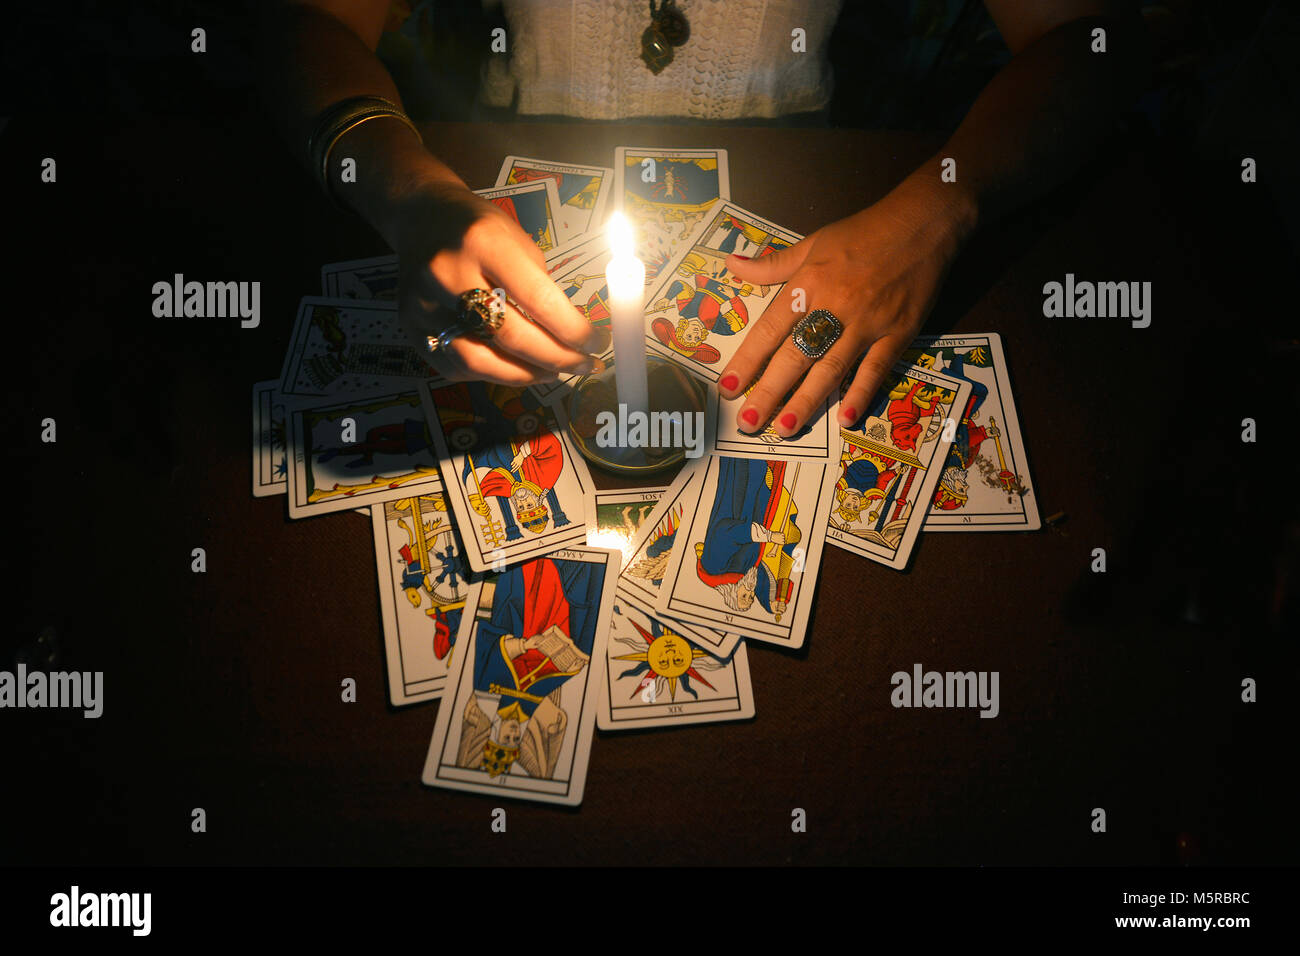 Tarot cards on table with candle - Stock Image